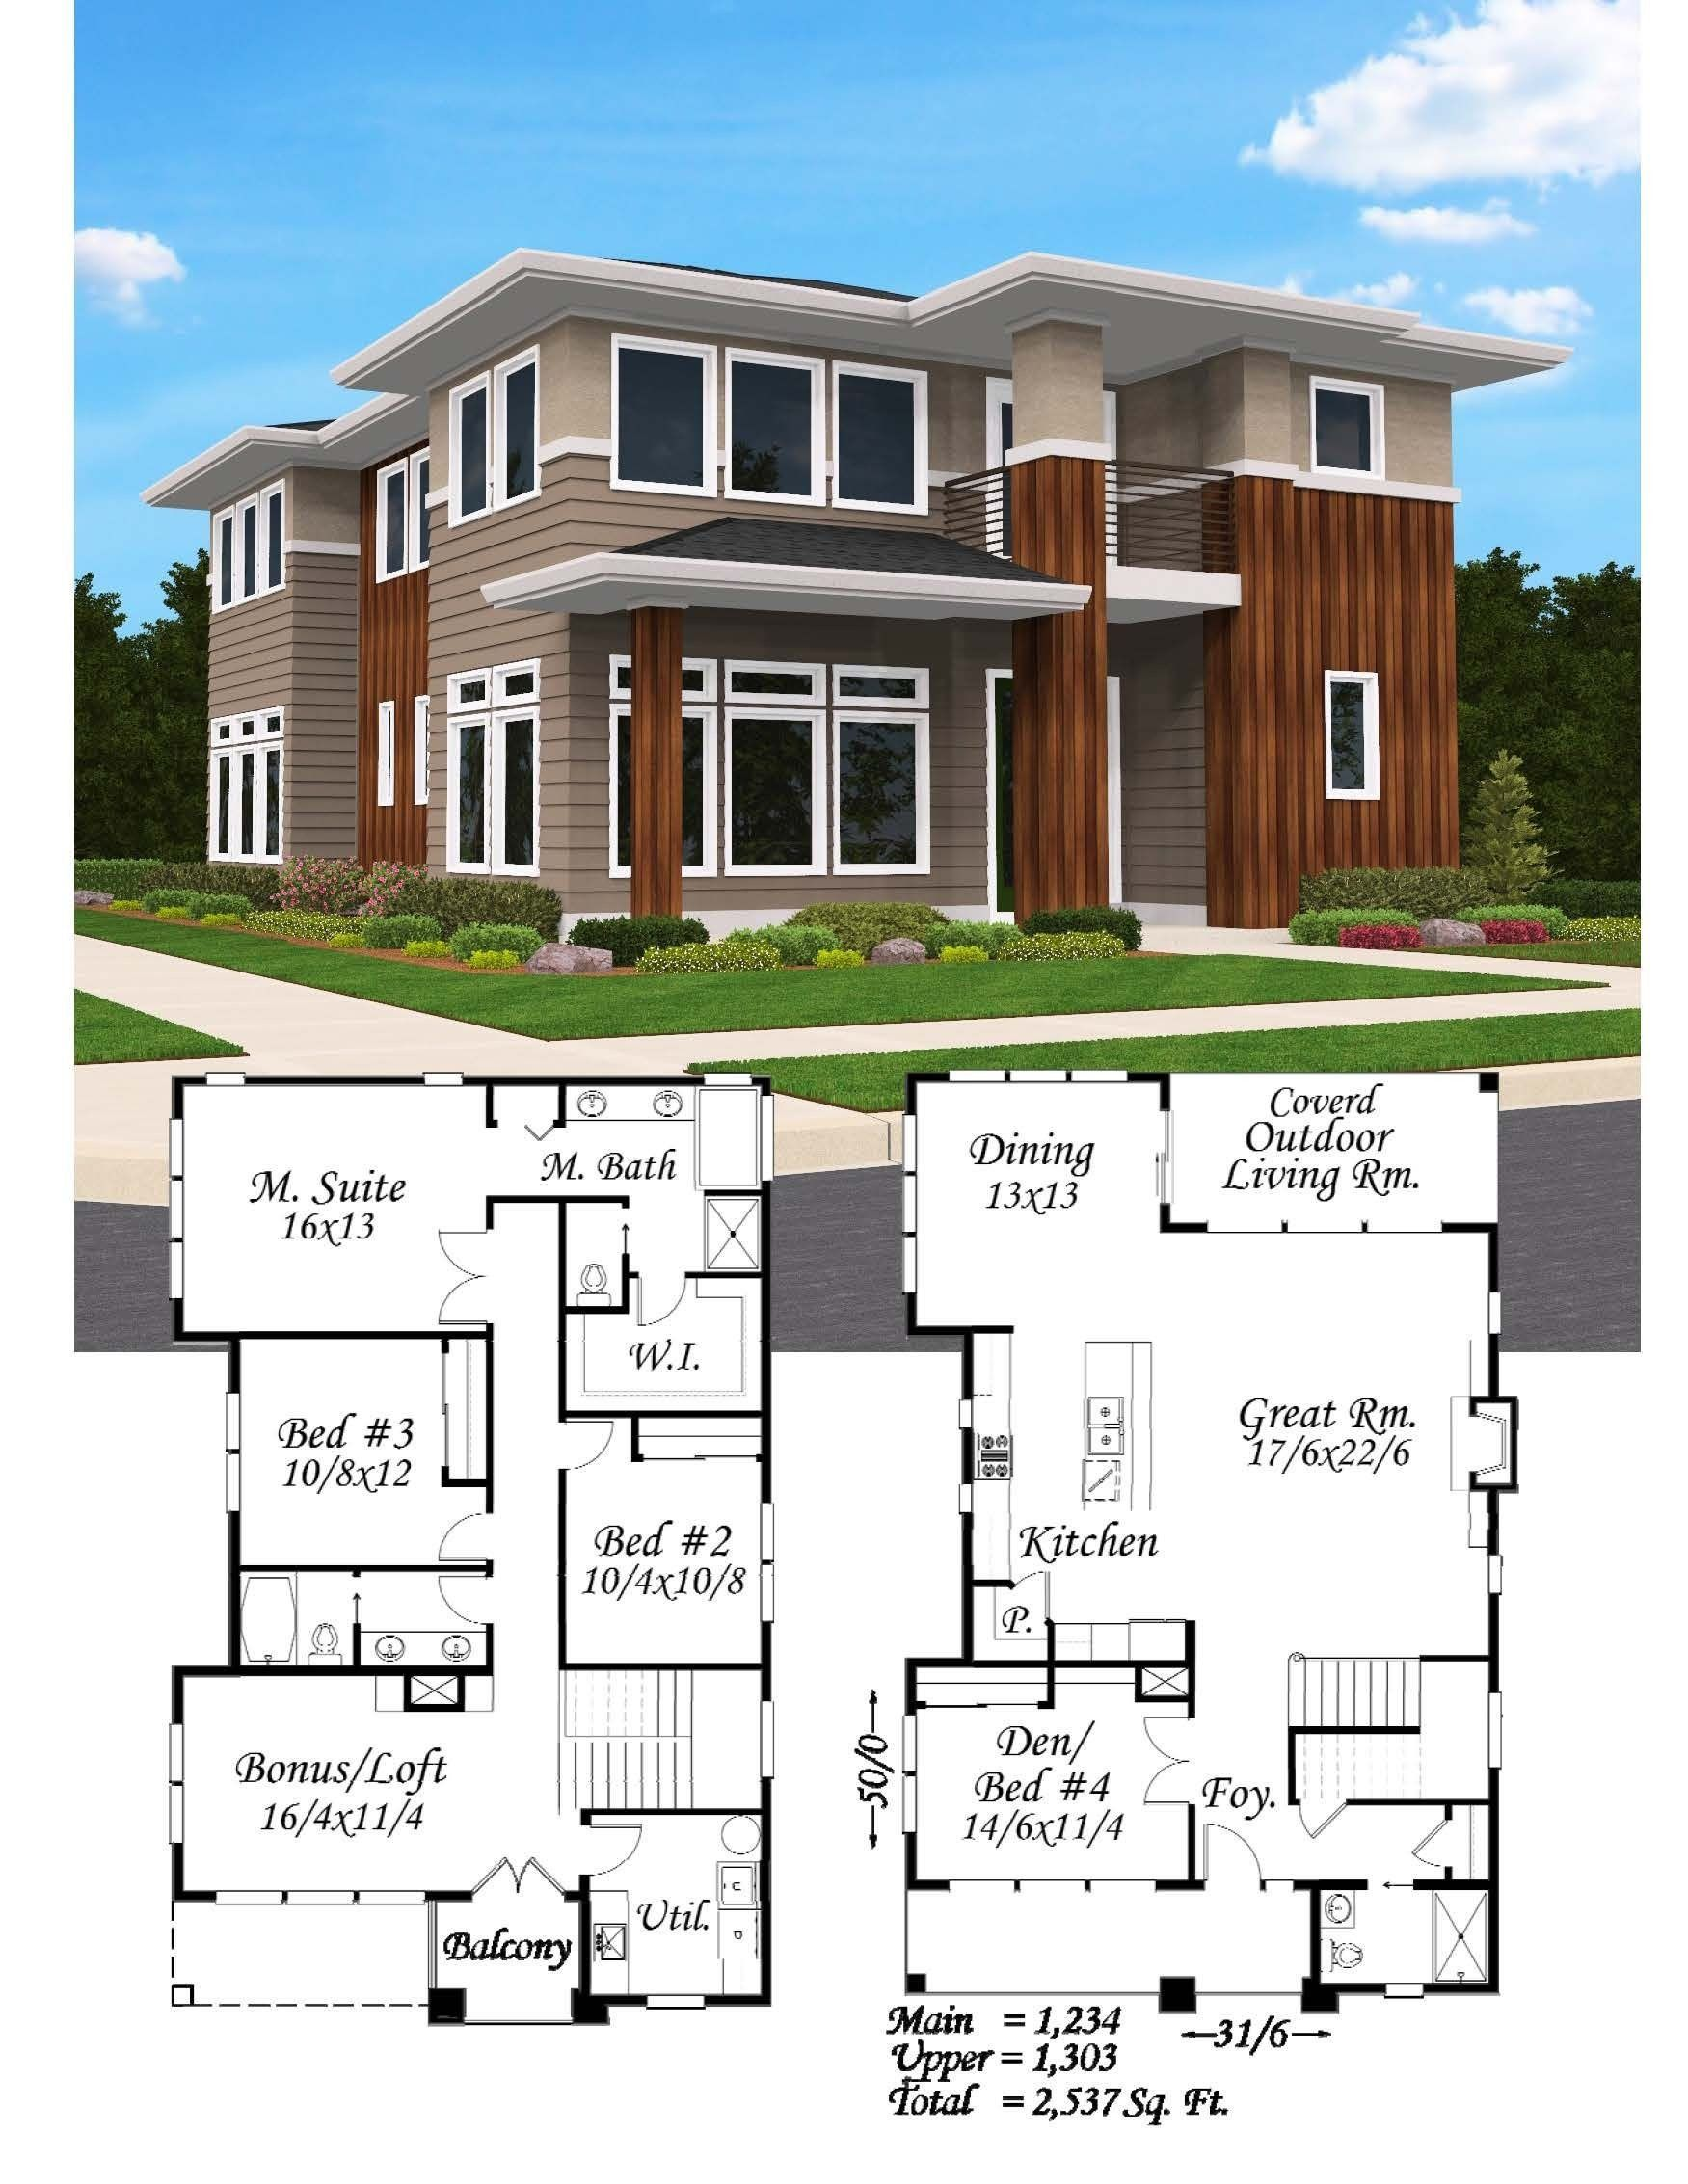 Northwest Modern House Plans A Groovy Corner Lot Home With Spectacular Street Appeal In 2020 Modern House Plans Architecture Model House House Plans